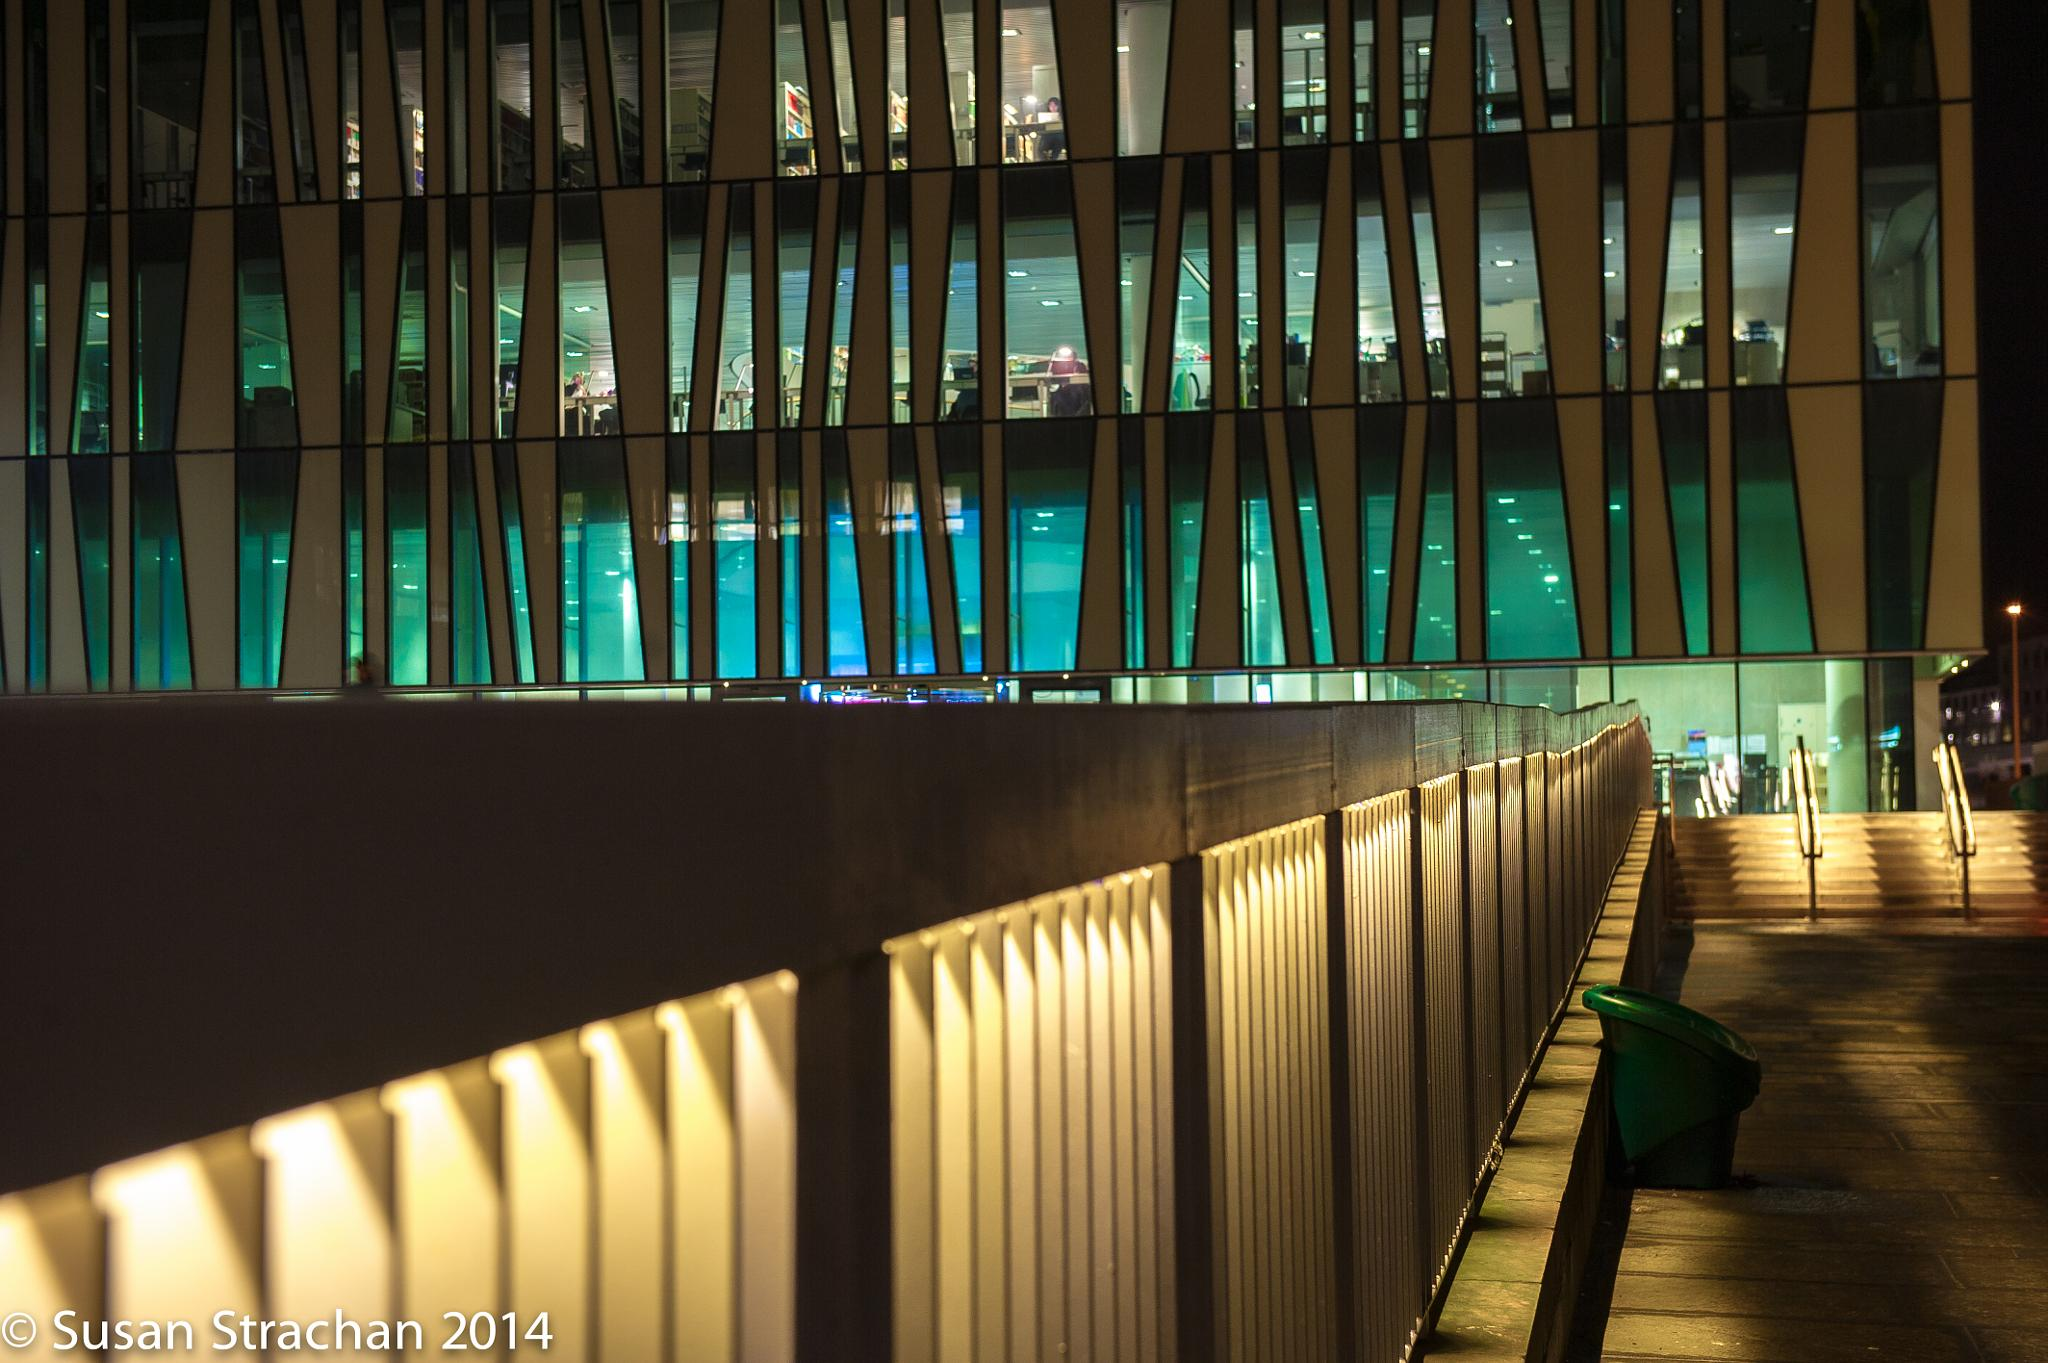 Library at night by Susan Strachan